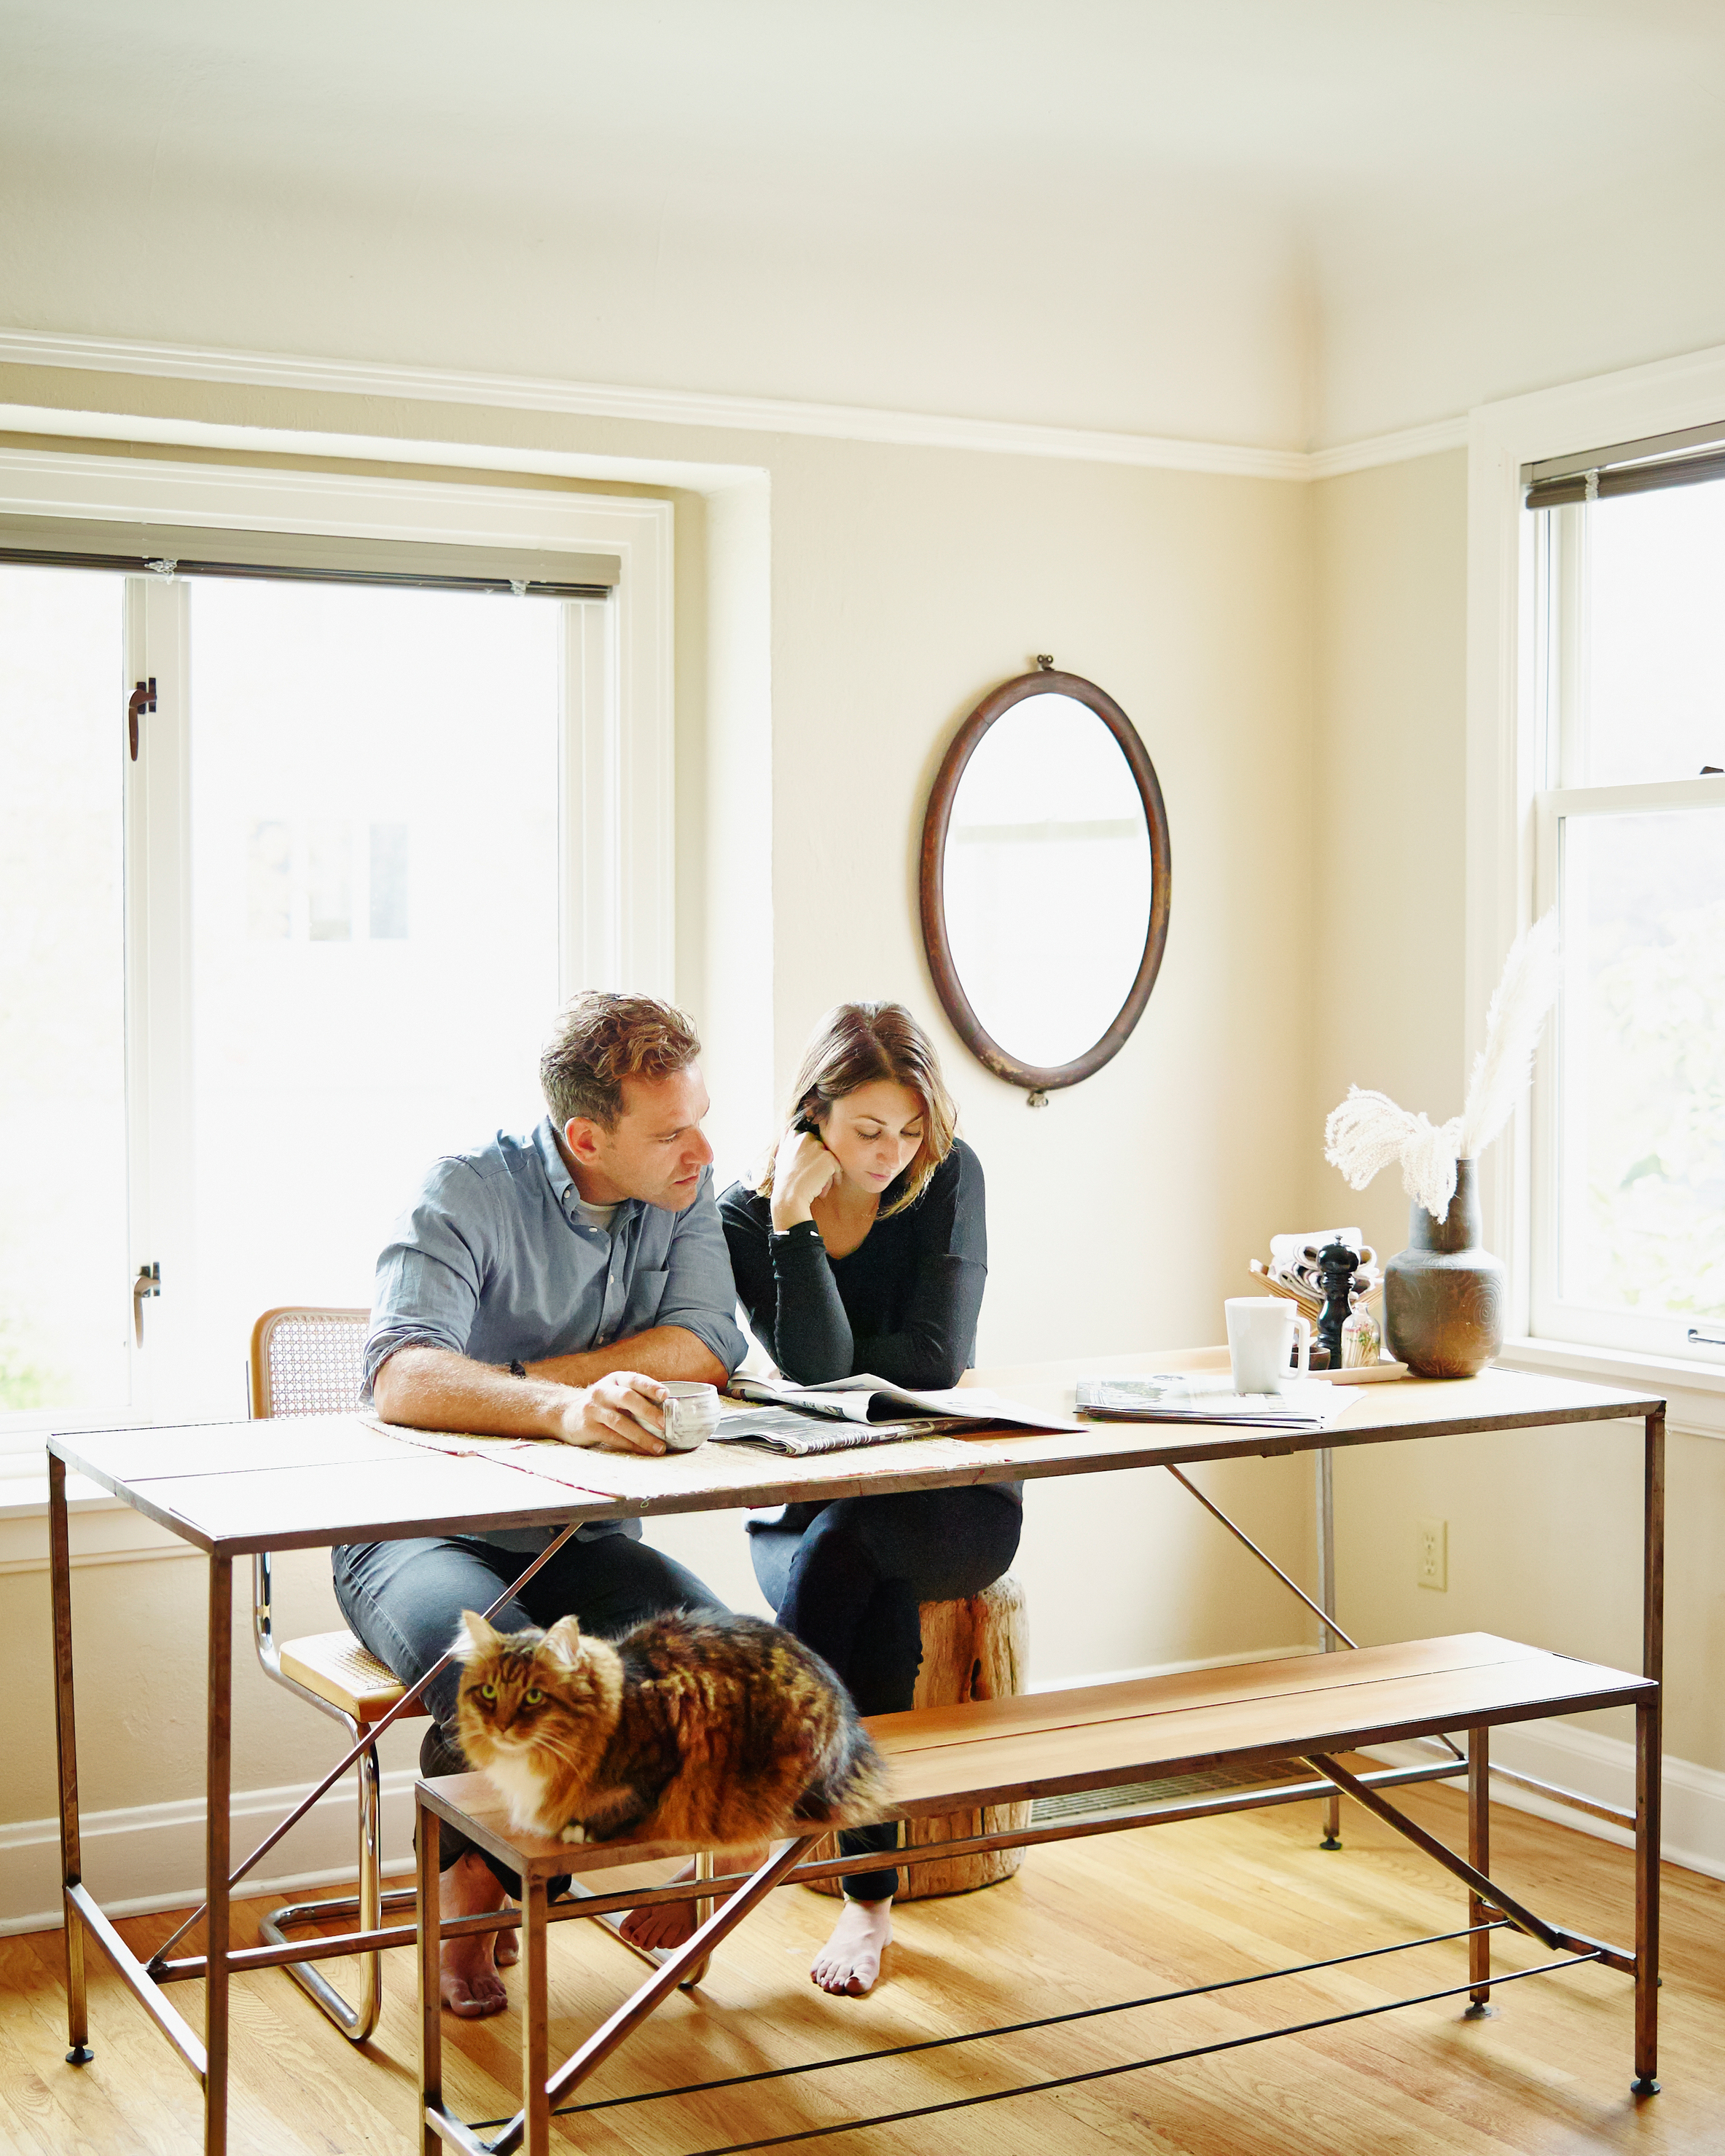 living-together-couple-at-table-reading-paper-cat-0116.jpg